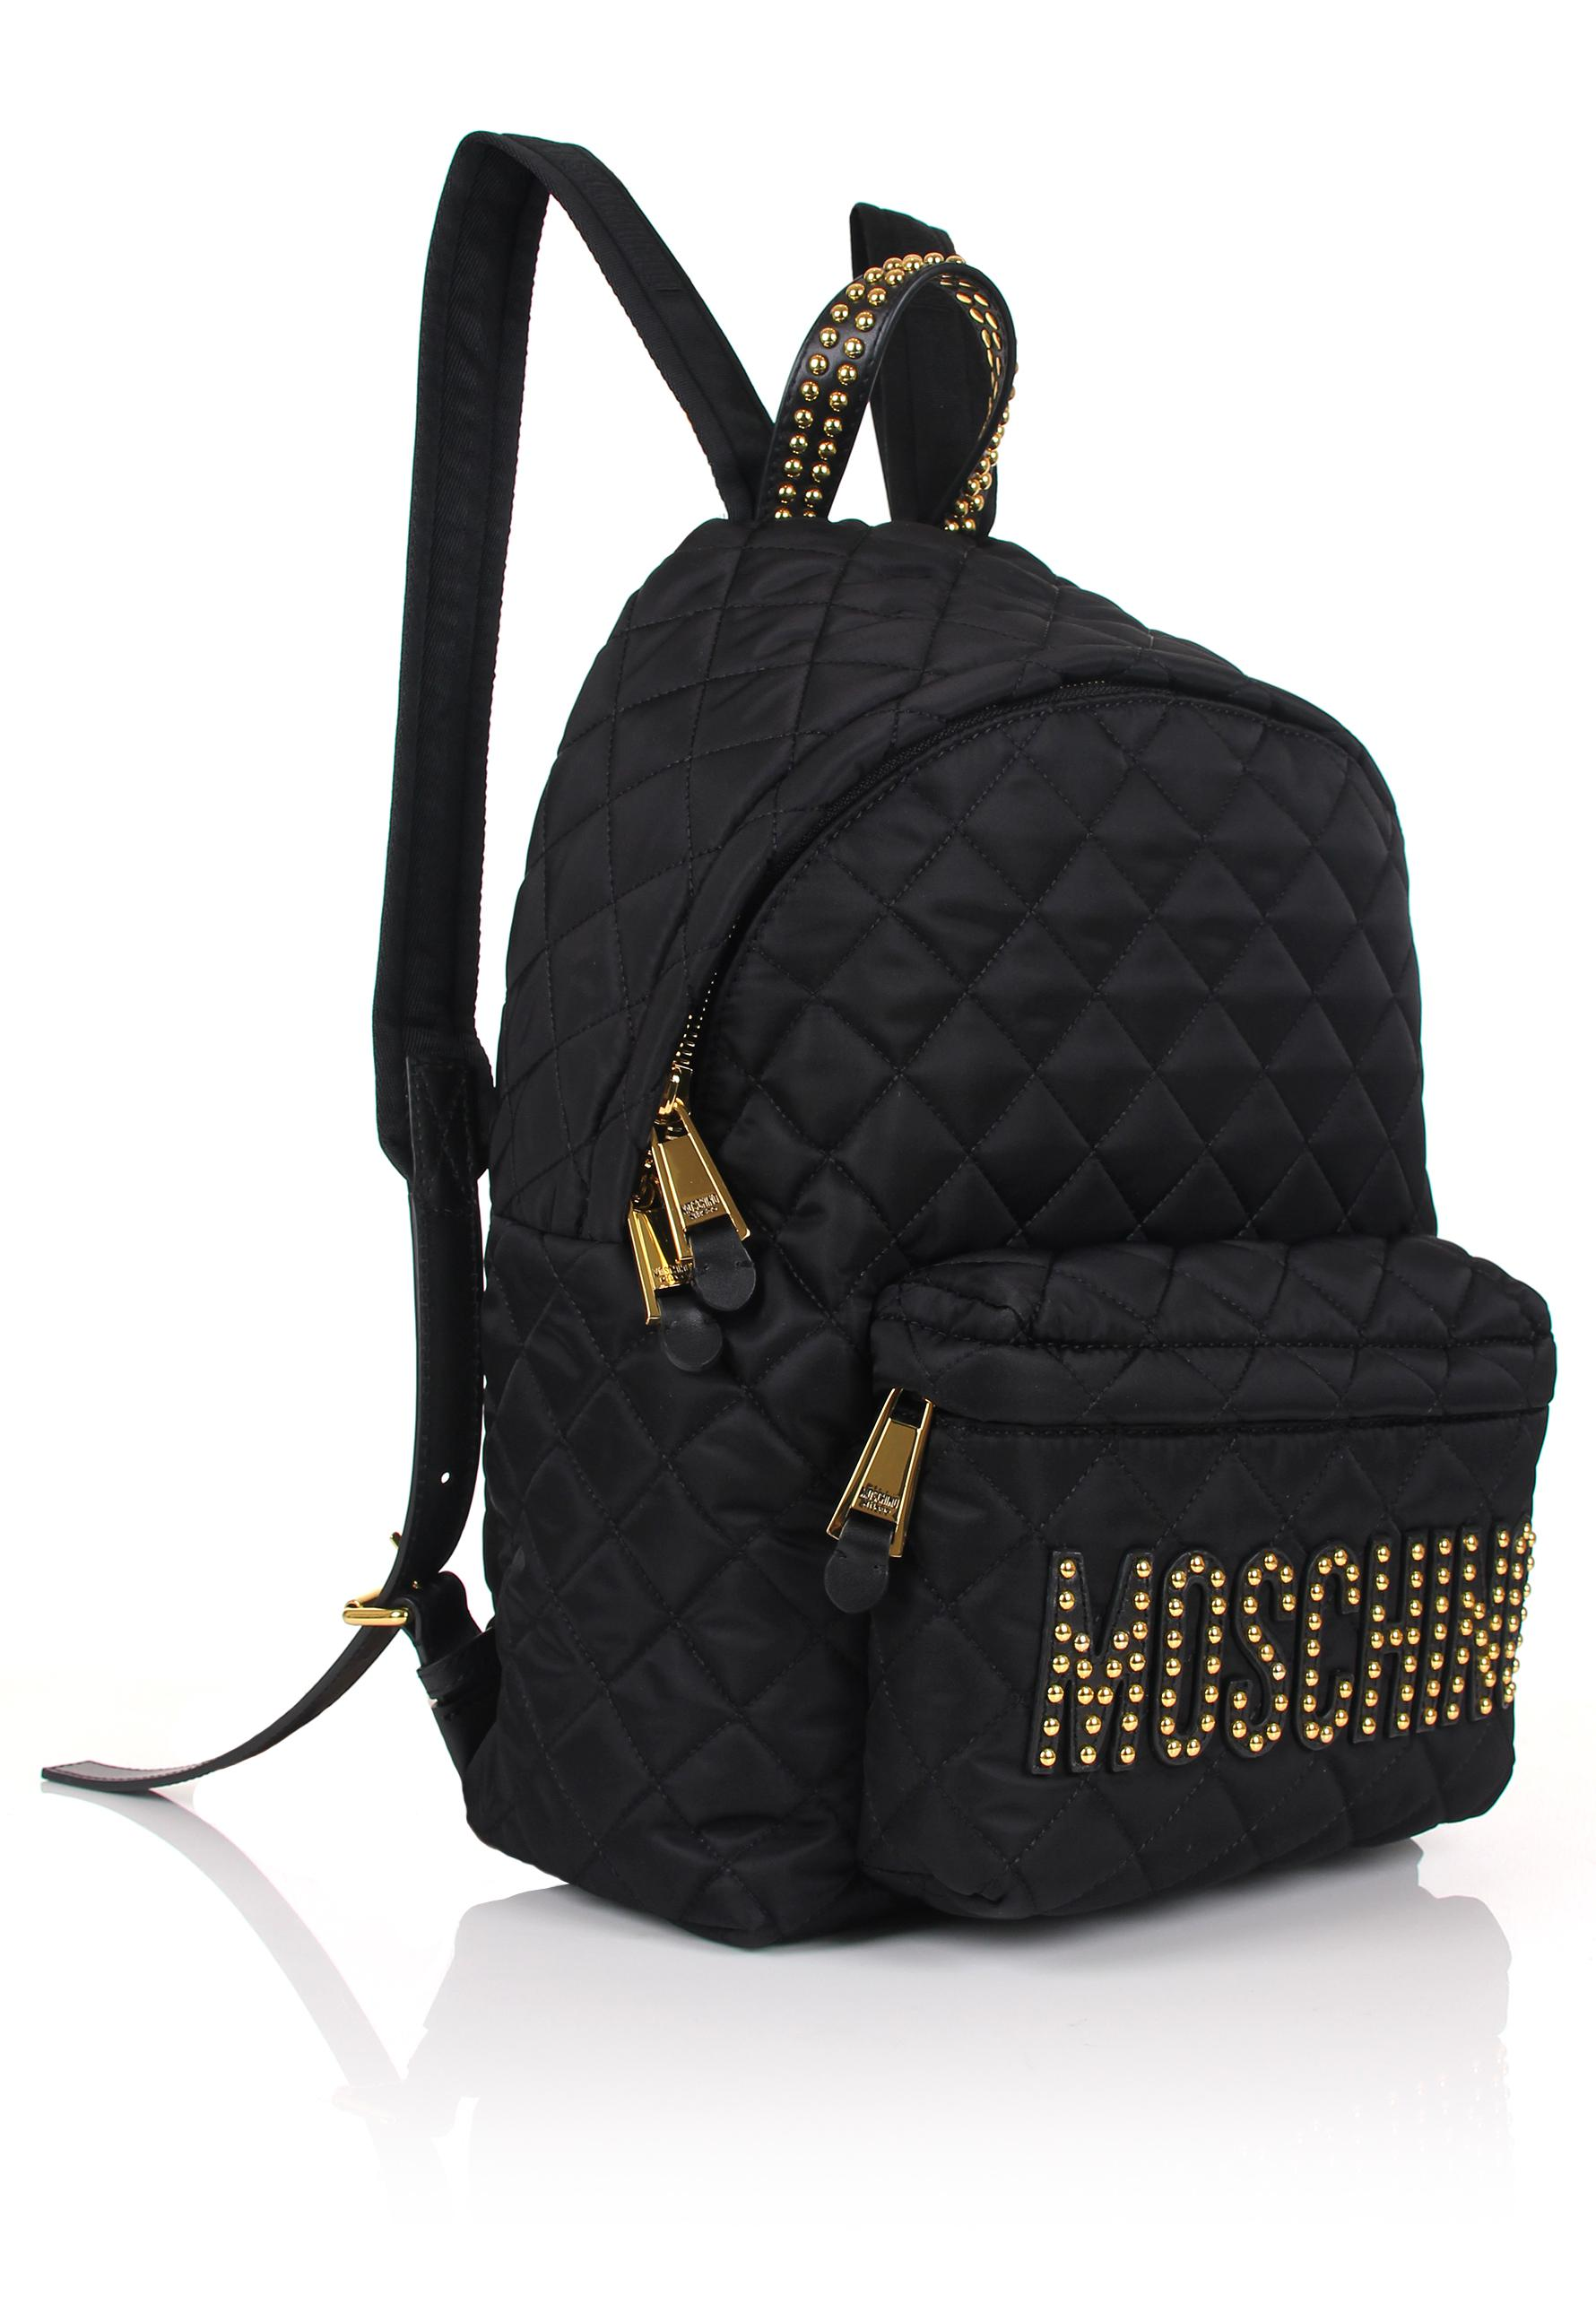 Outlet For Nice Moschino quilted branded backpack 2018 Cheap Online 100% Original Online IZPYYWY